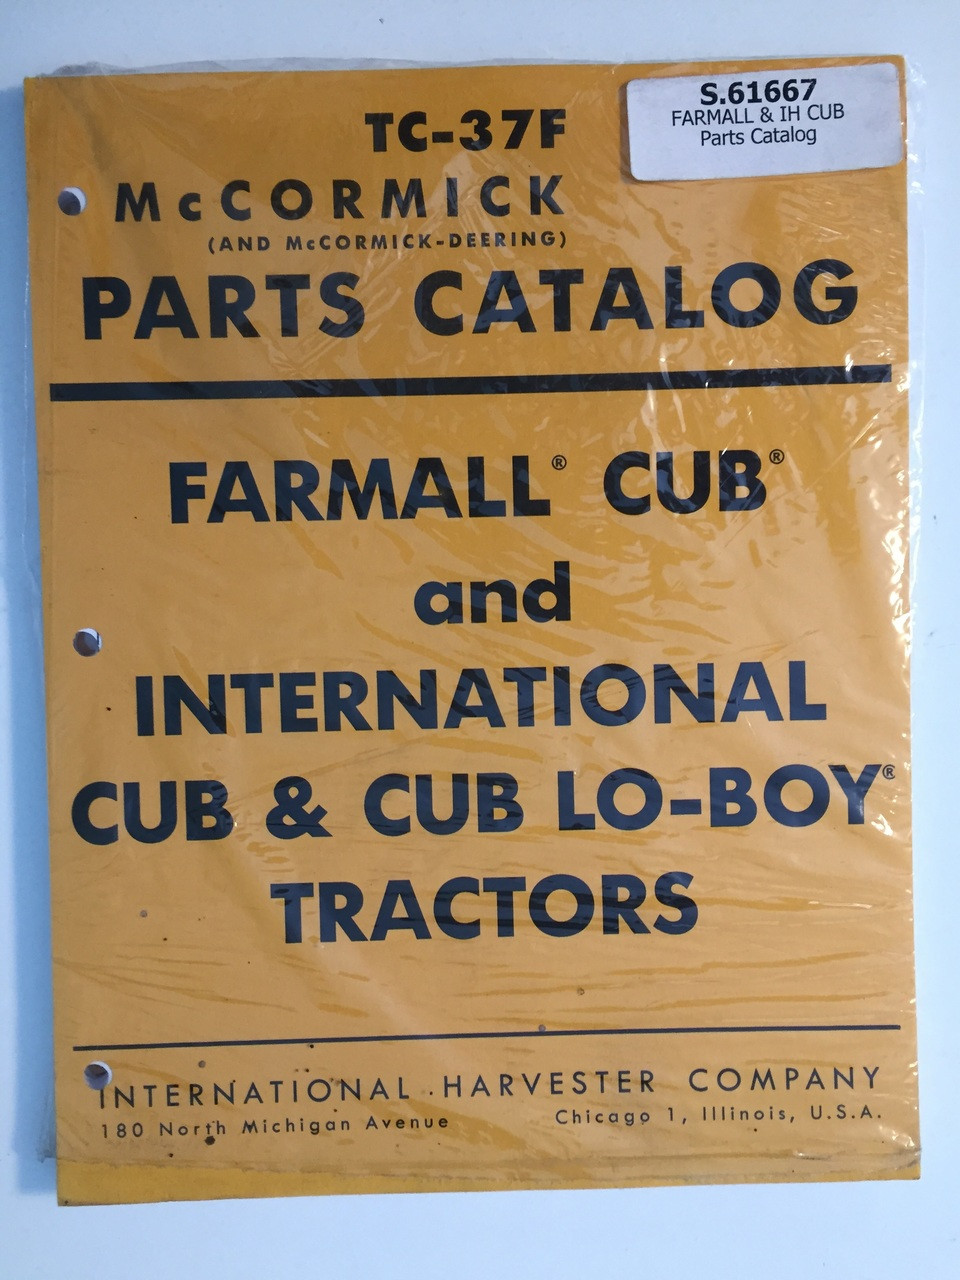 ih international cub cub lo boy tractor parts catalog [ 960 x 1280 Pixel ]